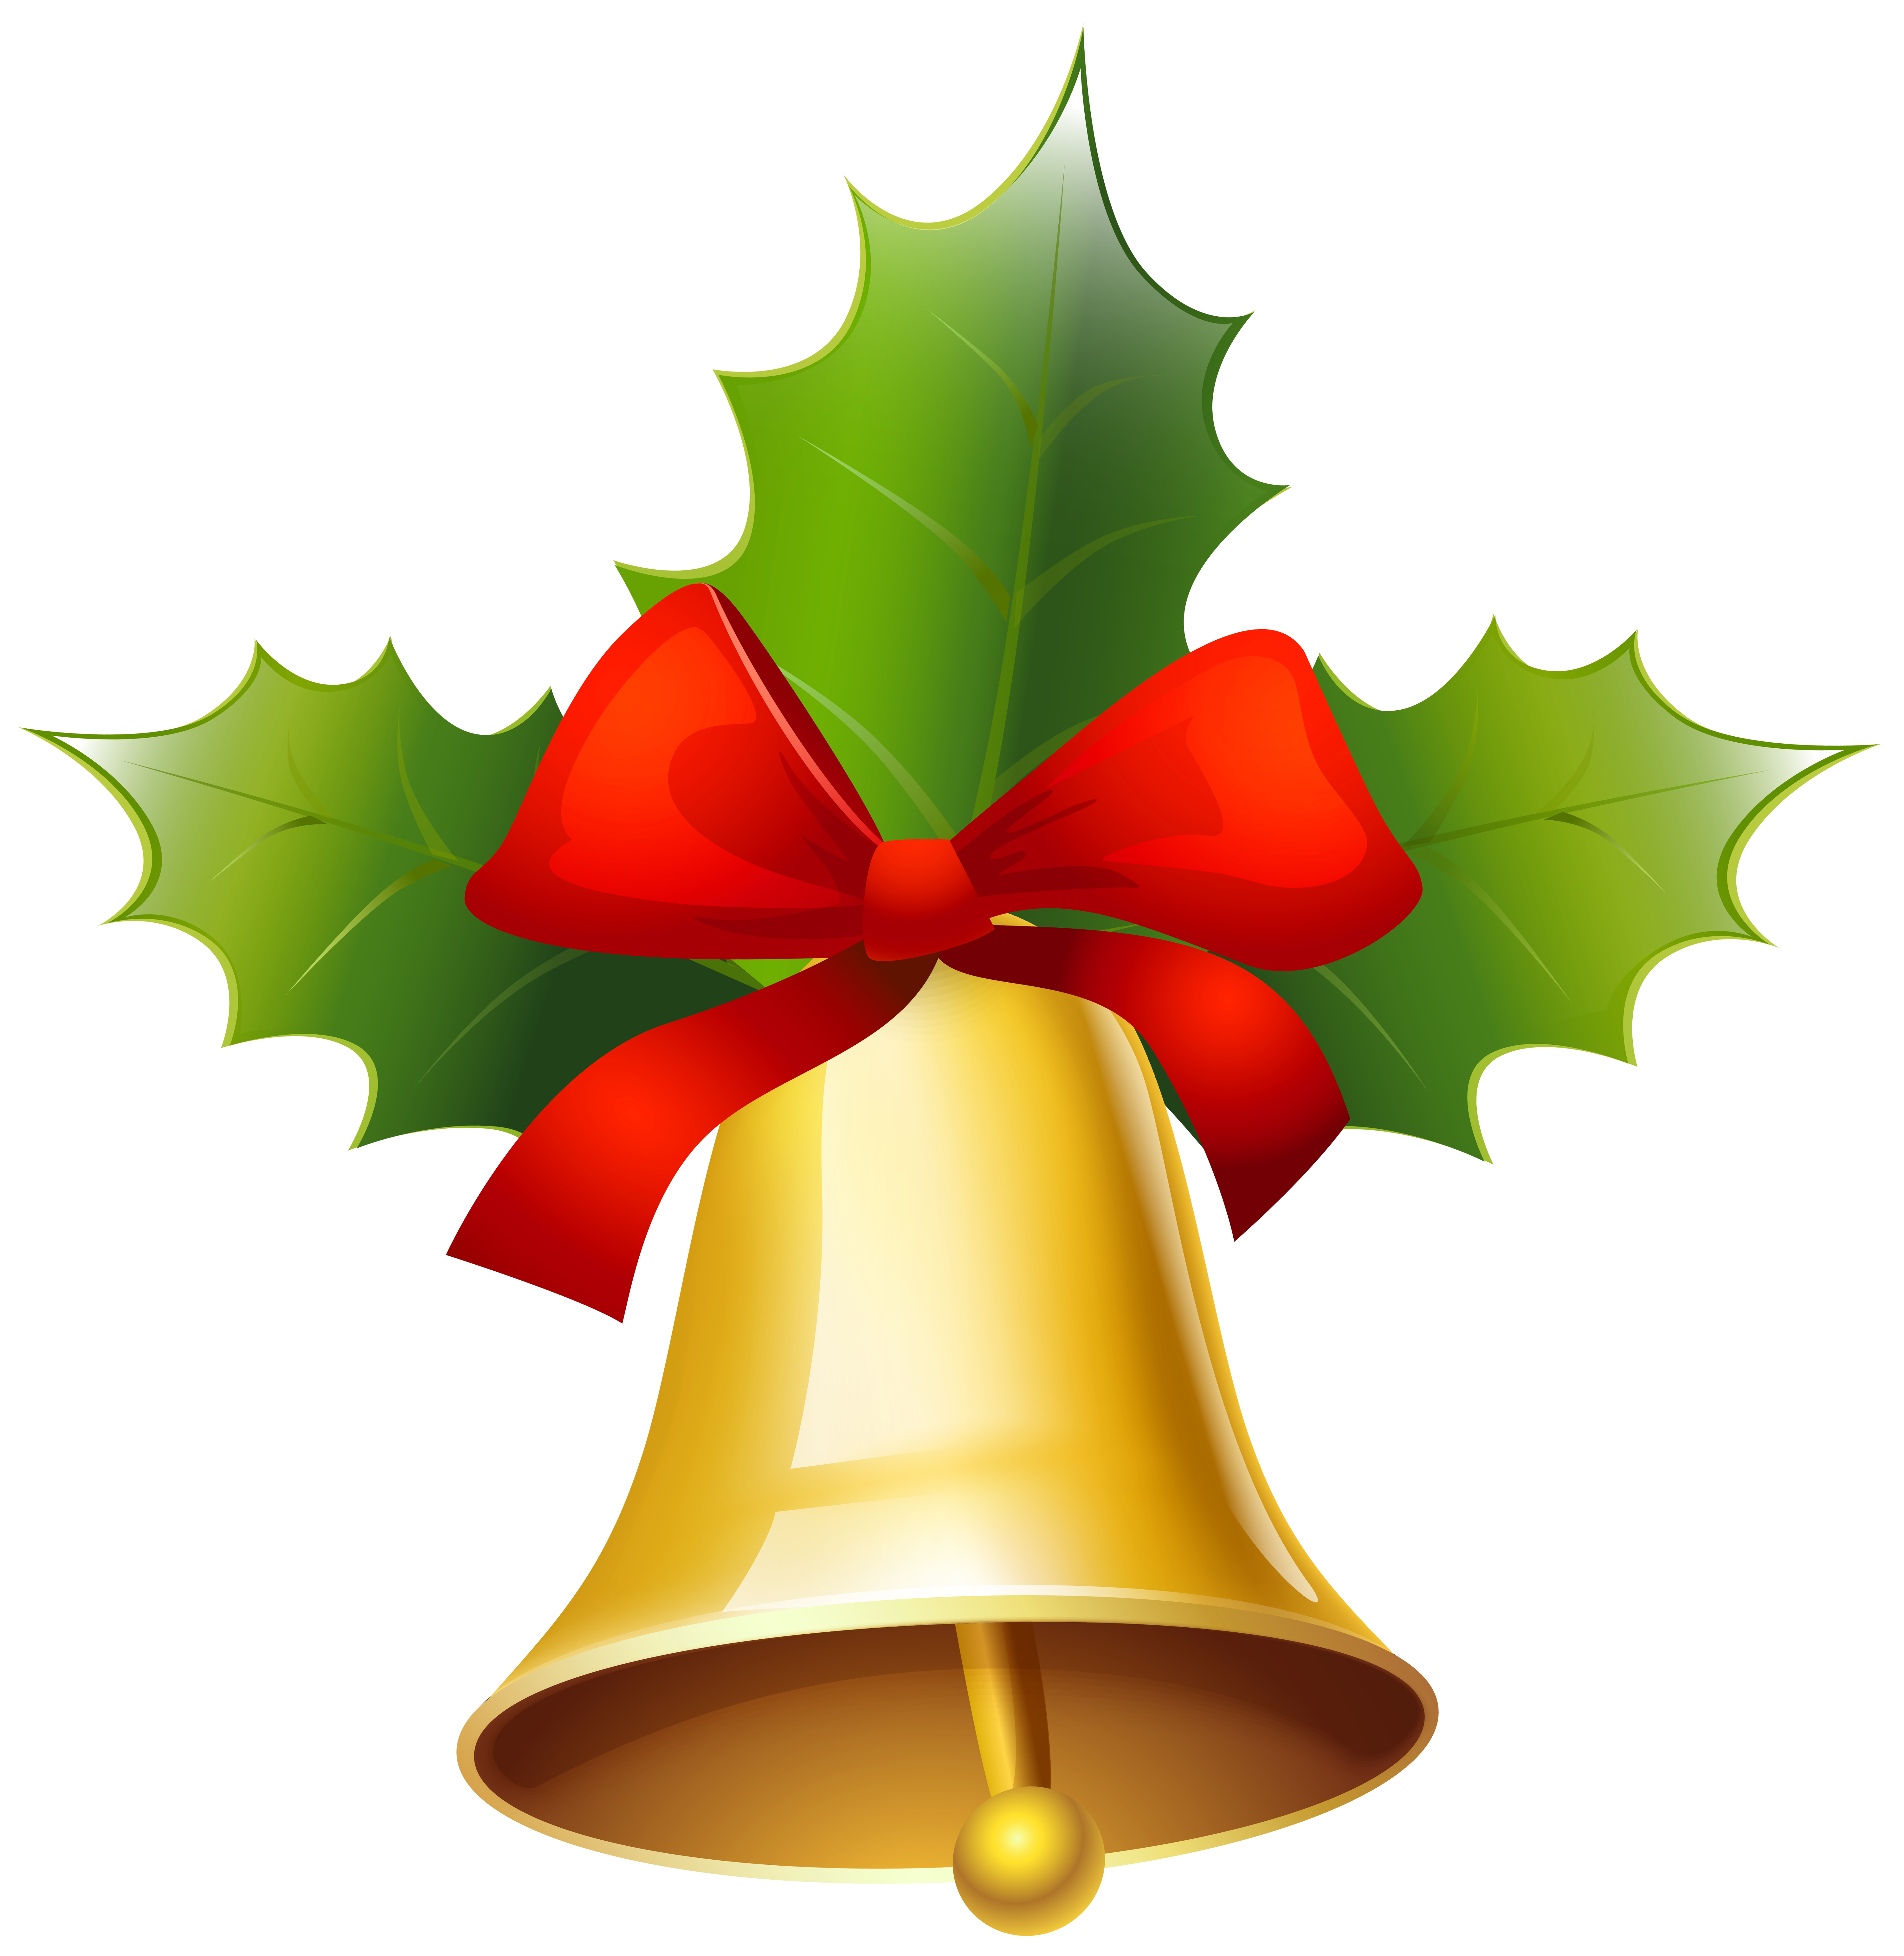 Golden bell png. Christmas clipart image gallery